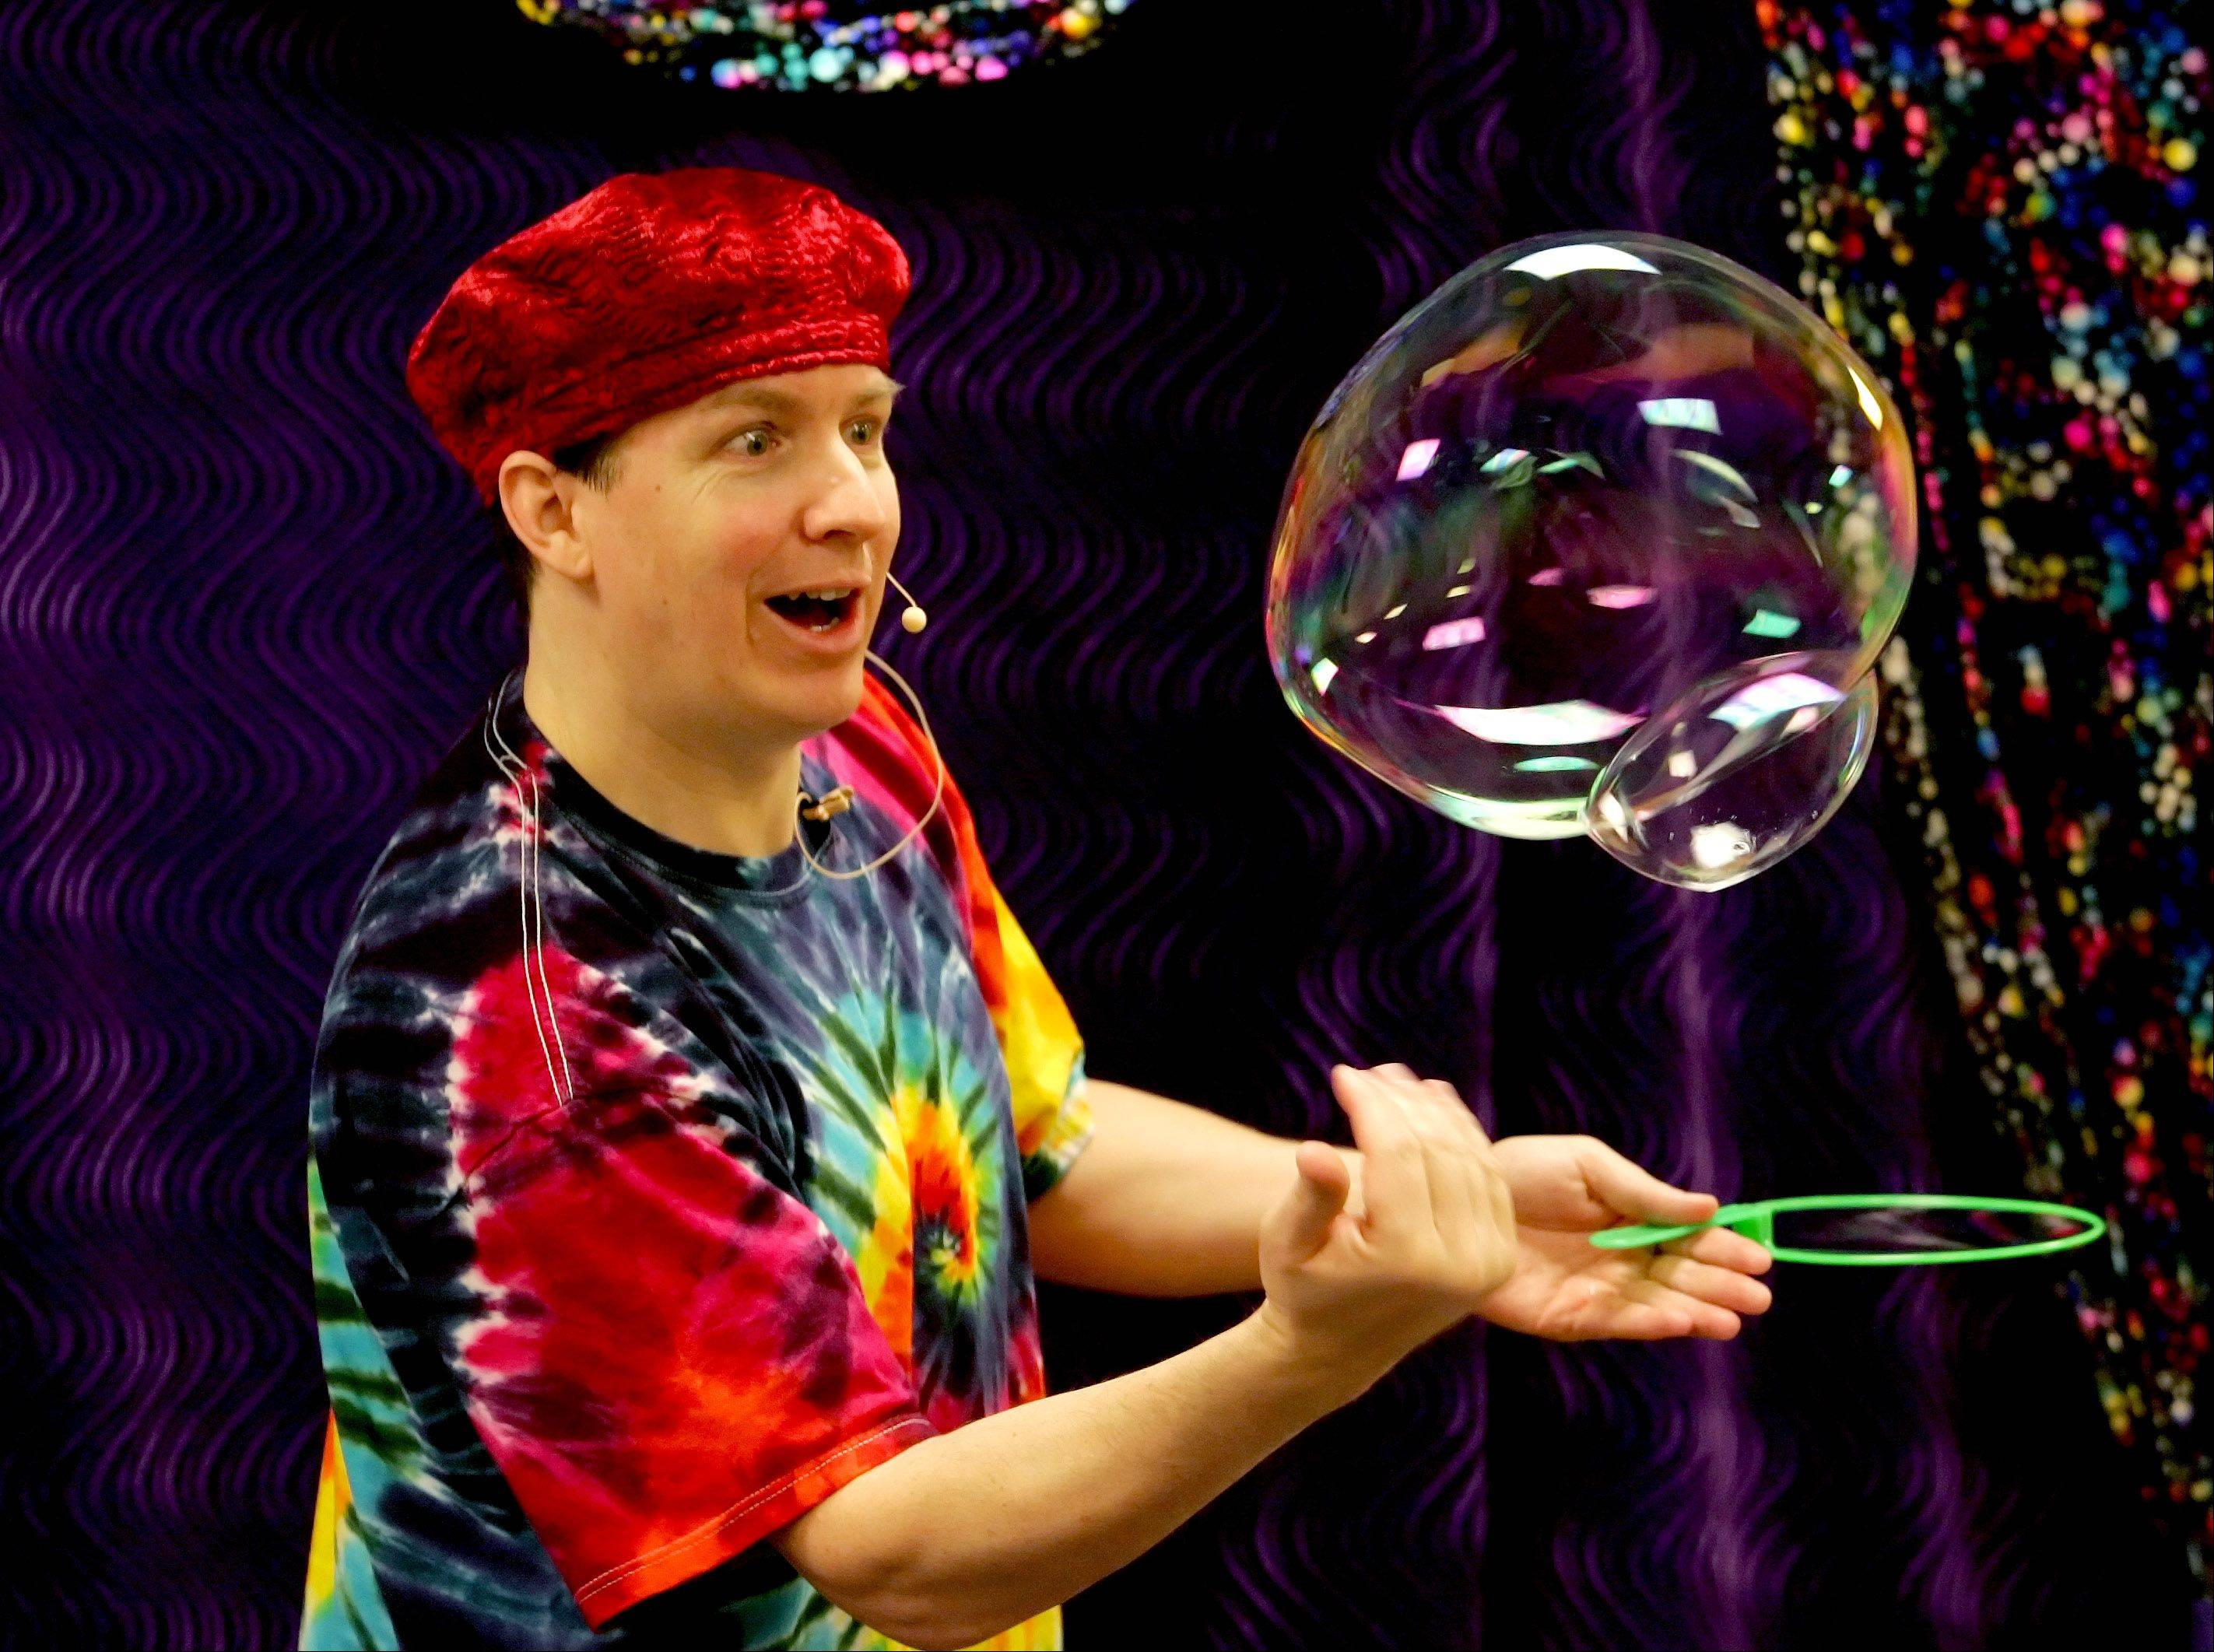 The Bubble Man, Geoff Akins, will be one of this year's featured performers at the DuPage Children's Museum's Bubble Bash.